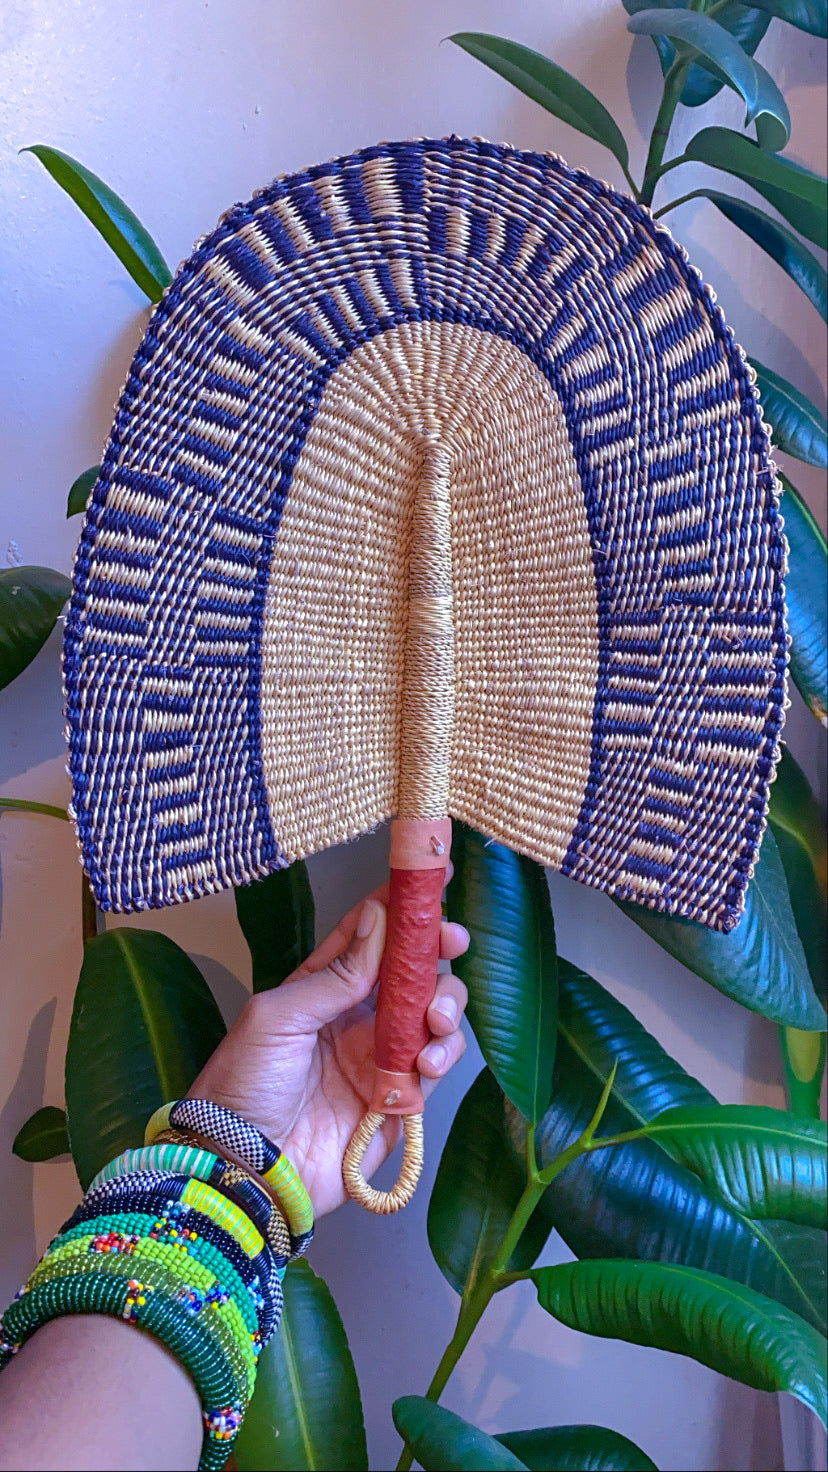 Burkina Faso Hand Woven Fan (Made in Burkina Faso 🇧🇫)